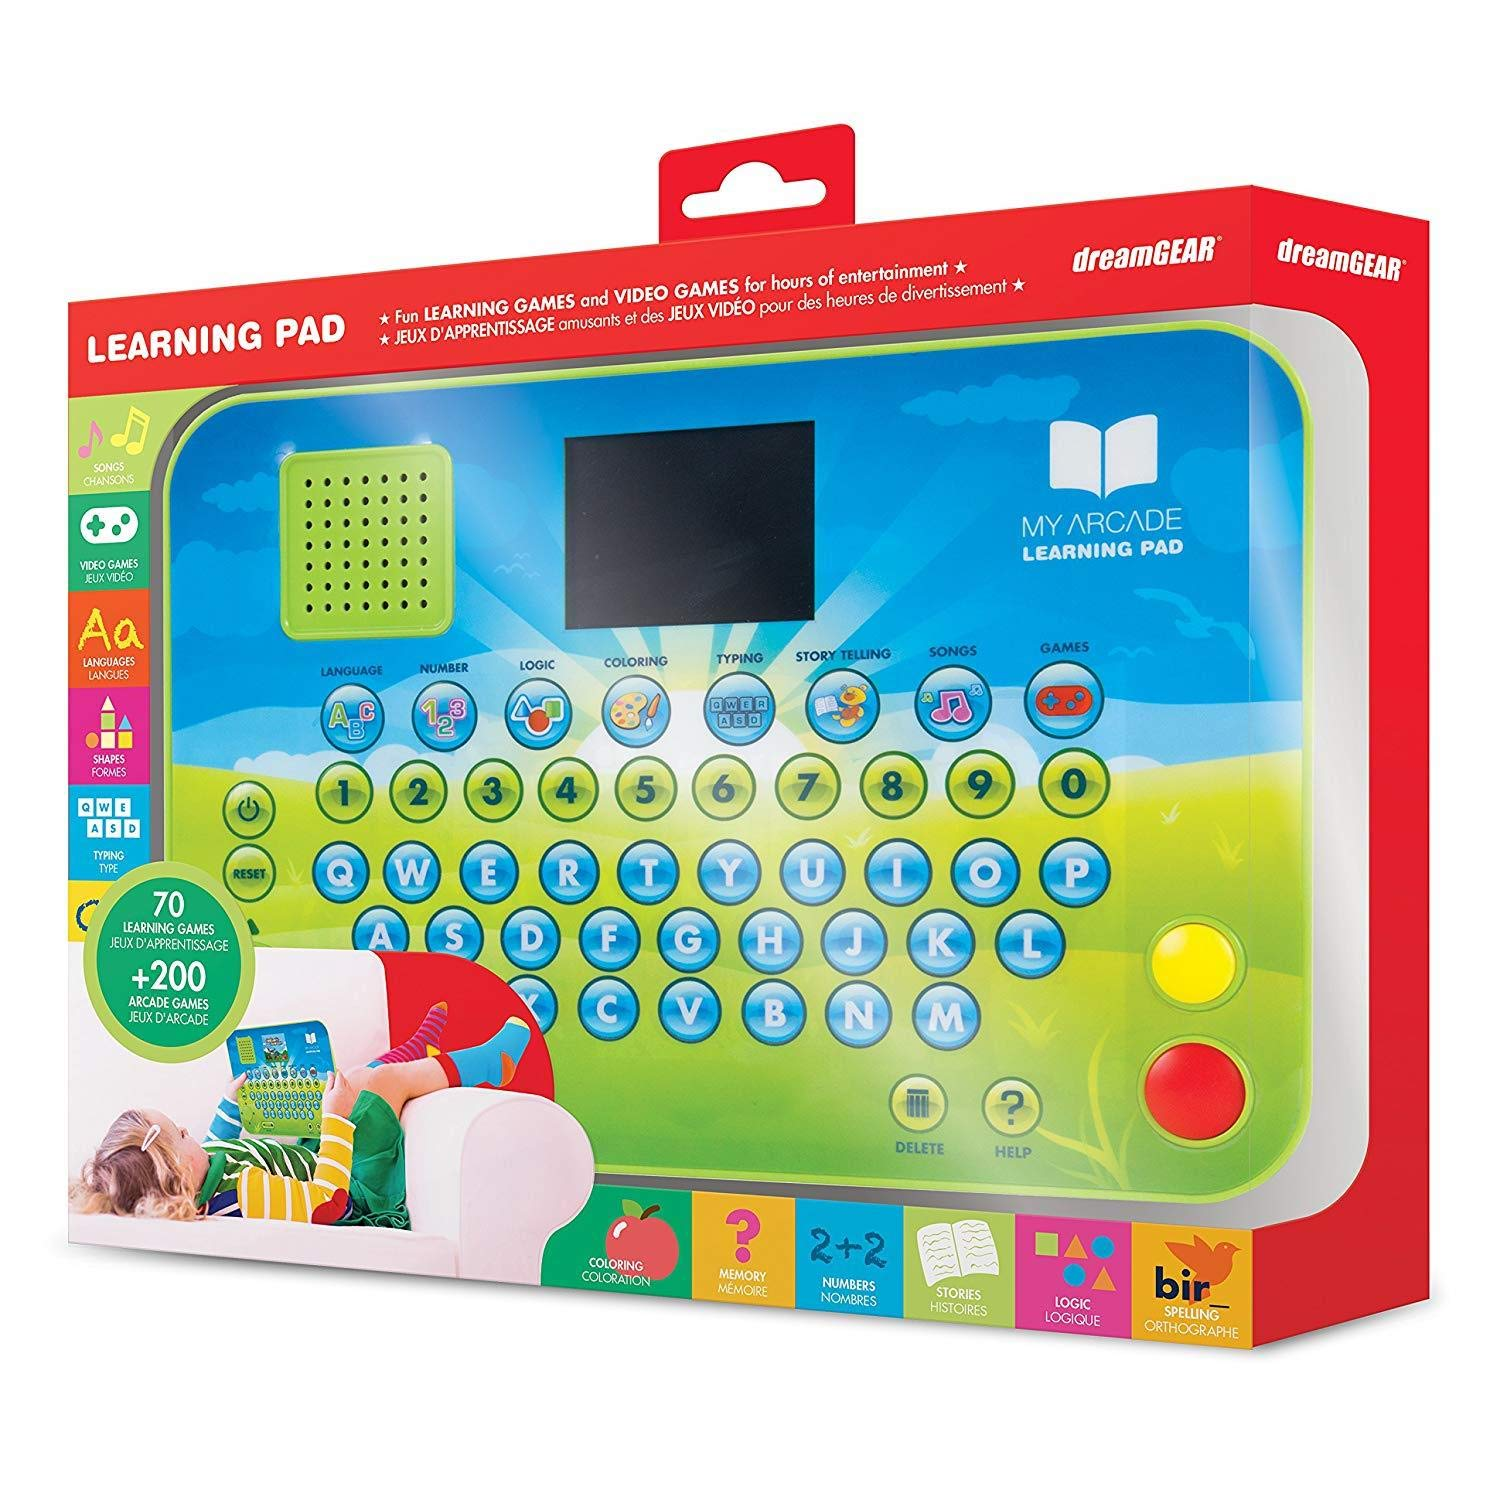 DreamGEAR Learning Pad - Educational Toy Tablet with 270+ Games Including ABC Sound, Math, and Stories by dreamGEAR